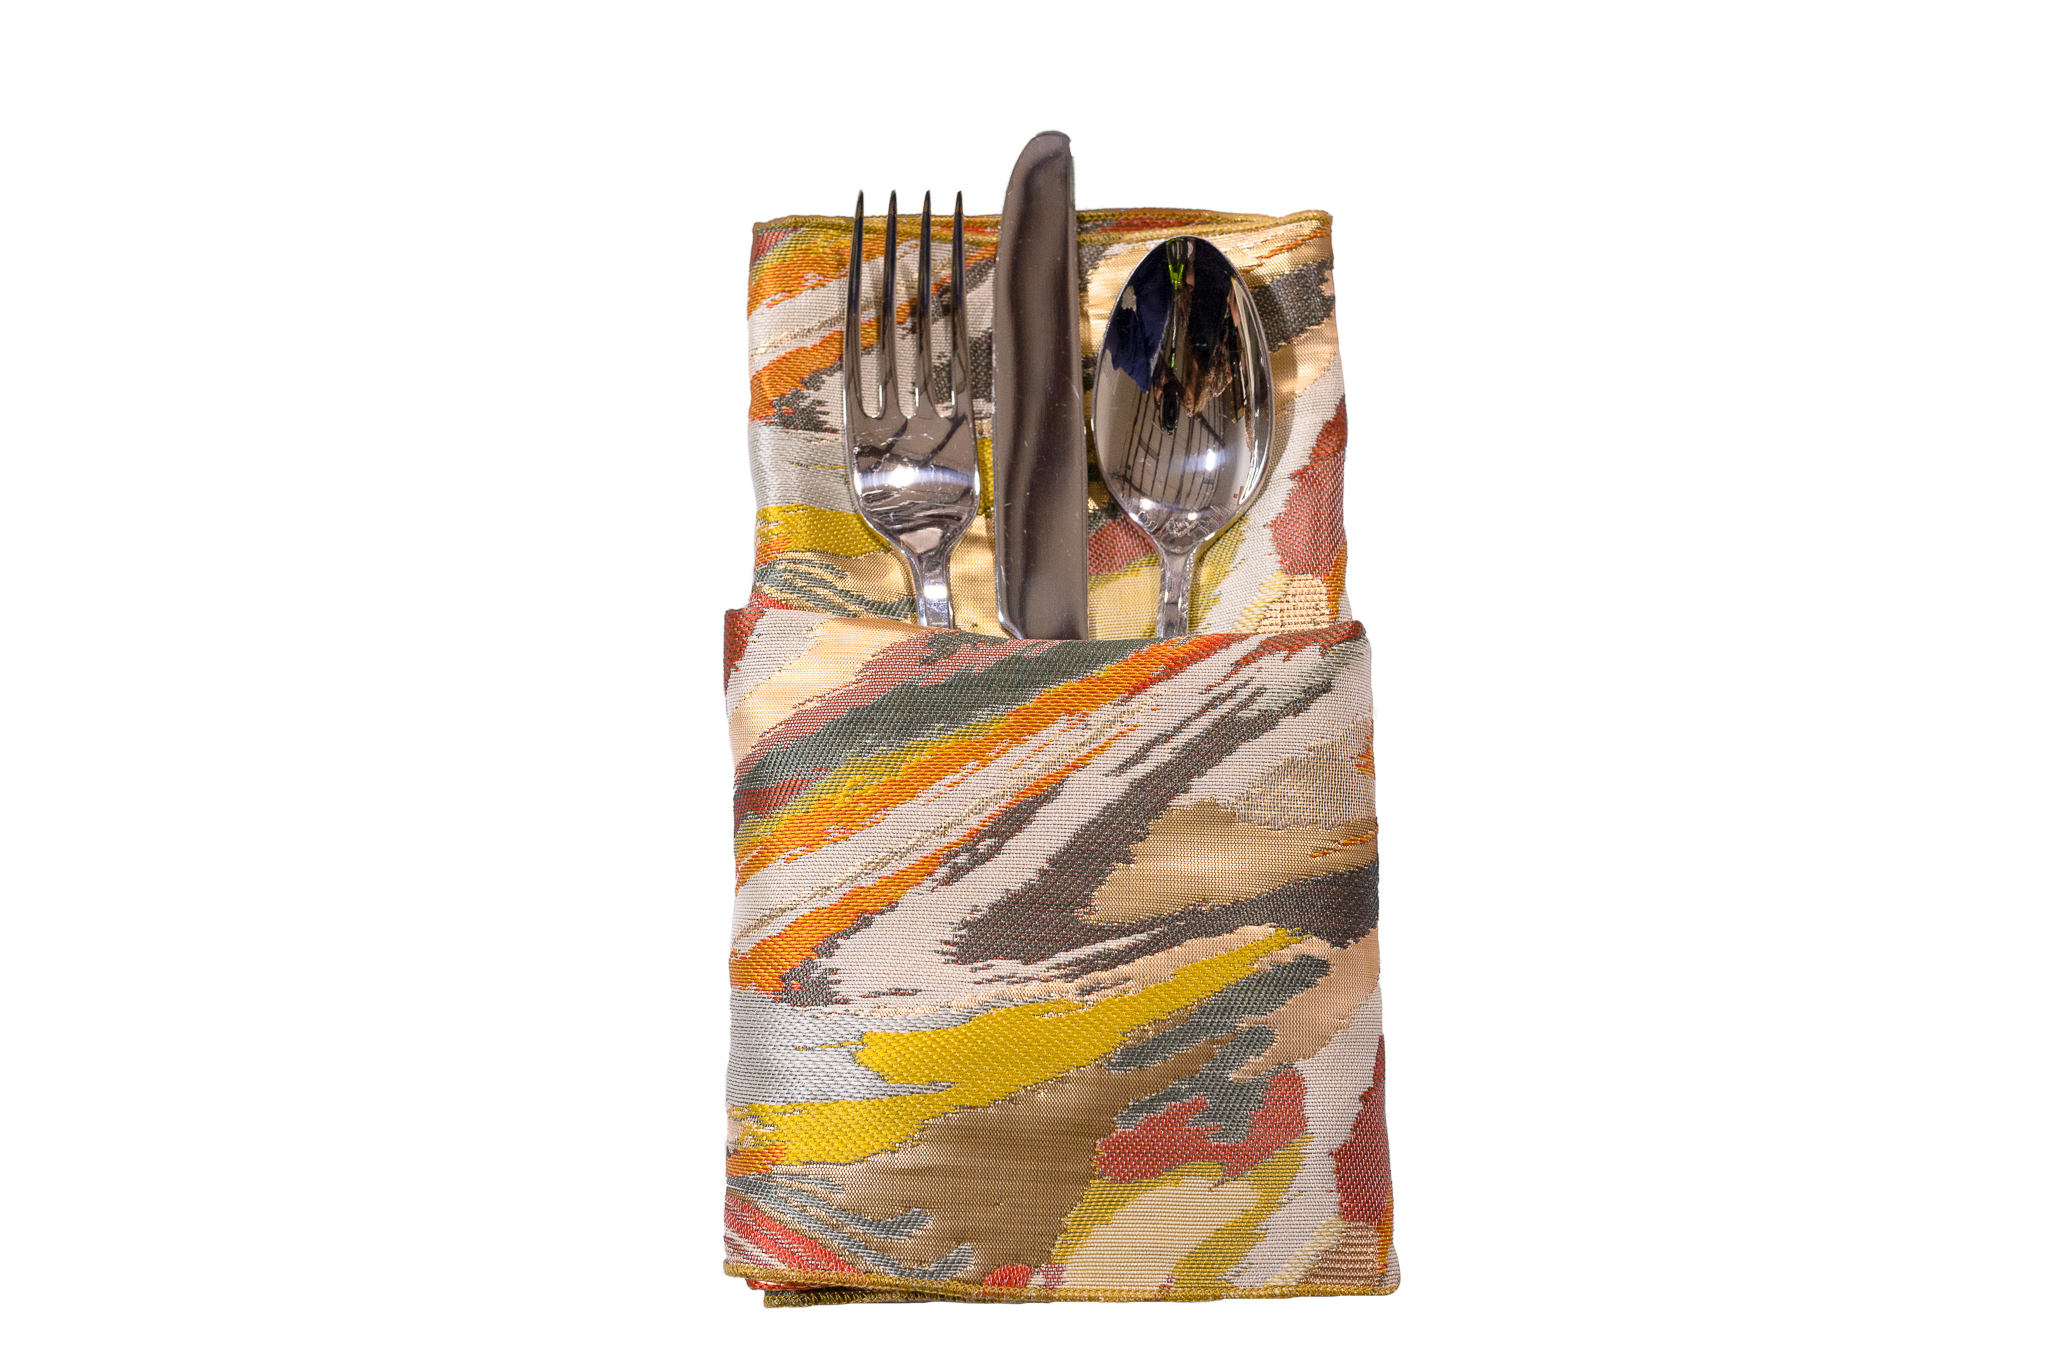 Rio Carnivale Napkin, Multi Color Swirl Napkin, #theNAPKINmovement